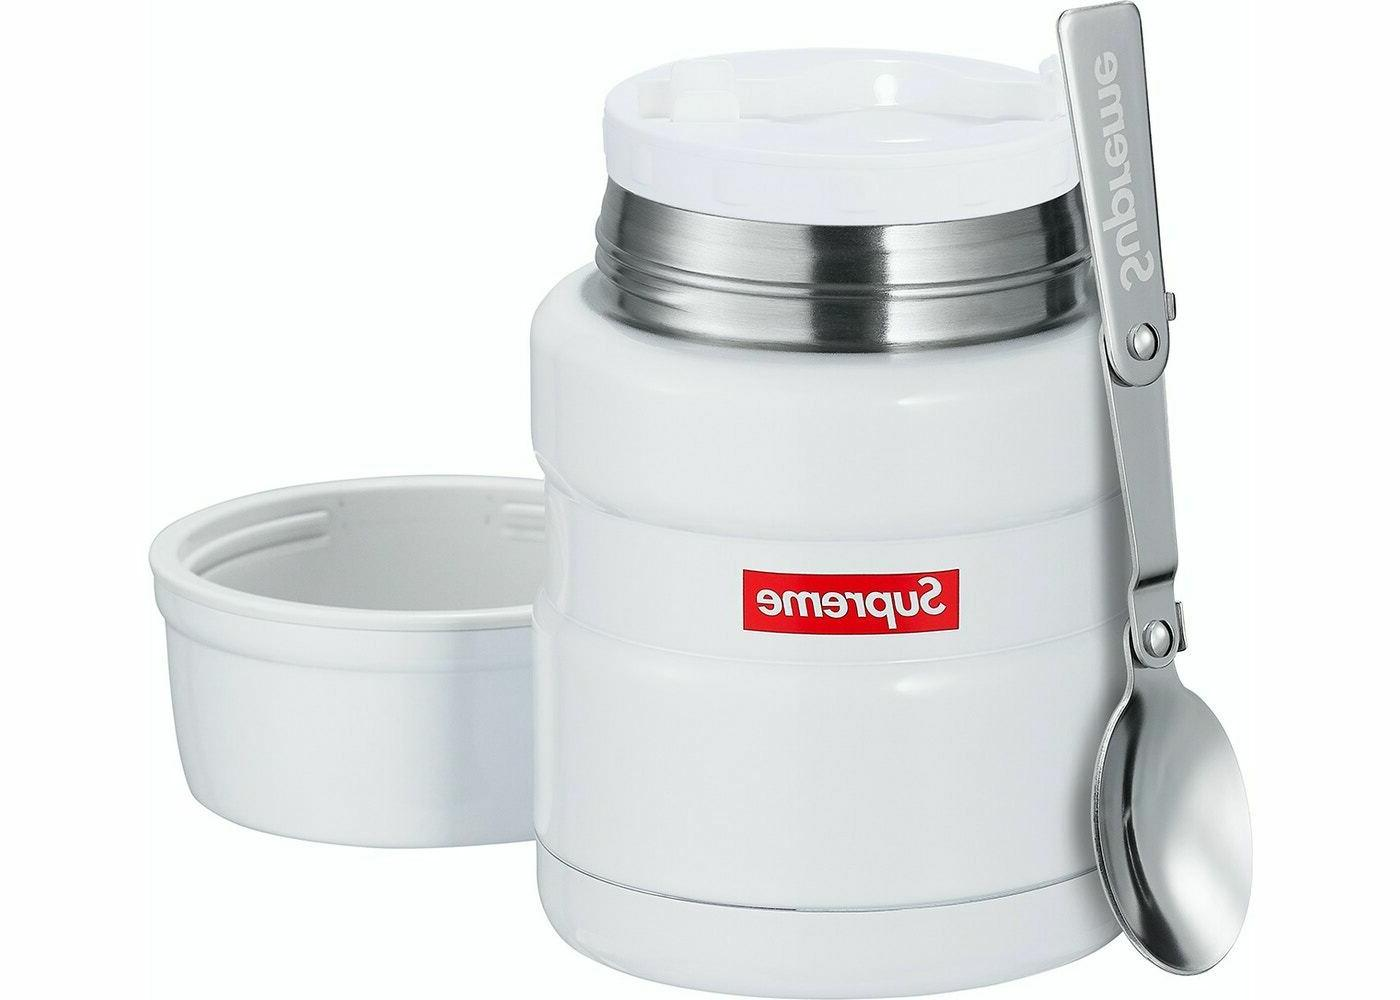 NEW SUPREME STAINLESS + SPOON ACCESSORY